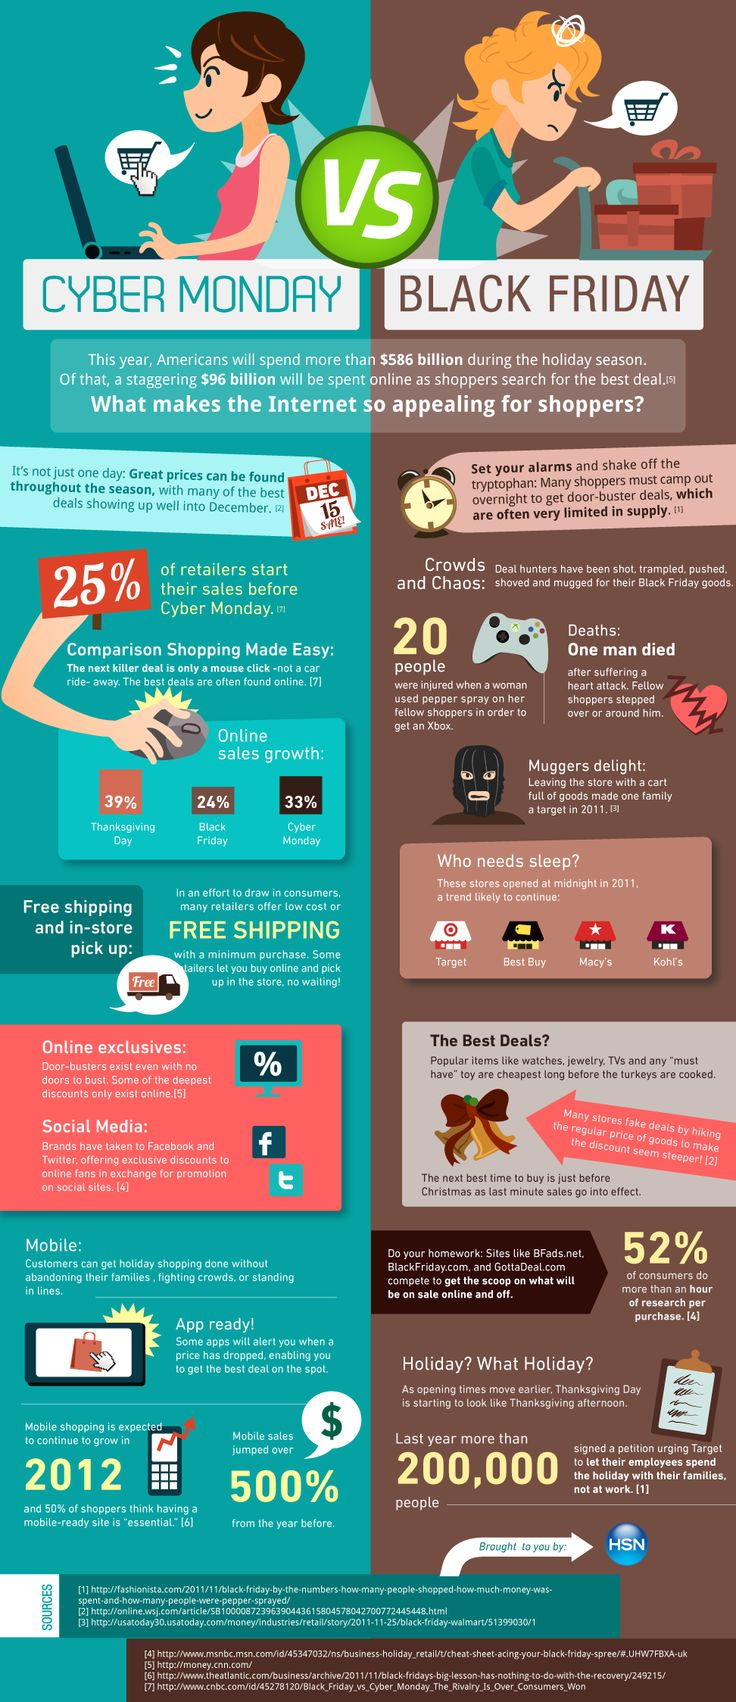 #CyberMonday growing in popularity/influence 4 holiday shopping, making up nearly 1/6 of all sales (16.4% - 96B/586B) Infographic [Black-Friday-vs.-Cyber-Monday -- 11192012] by HSN Electronics Shop via @mashable.